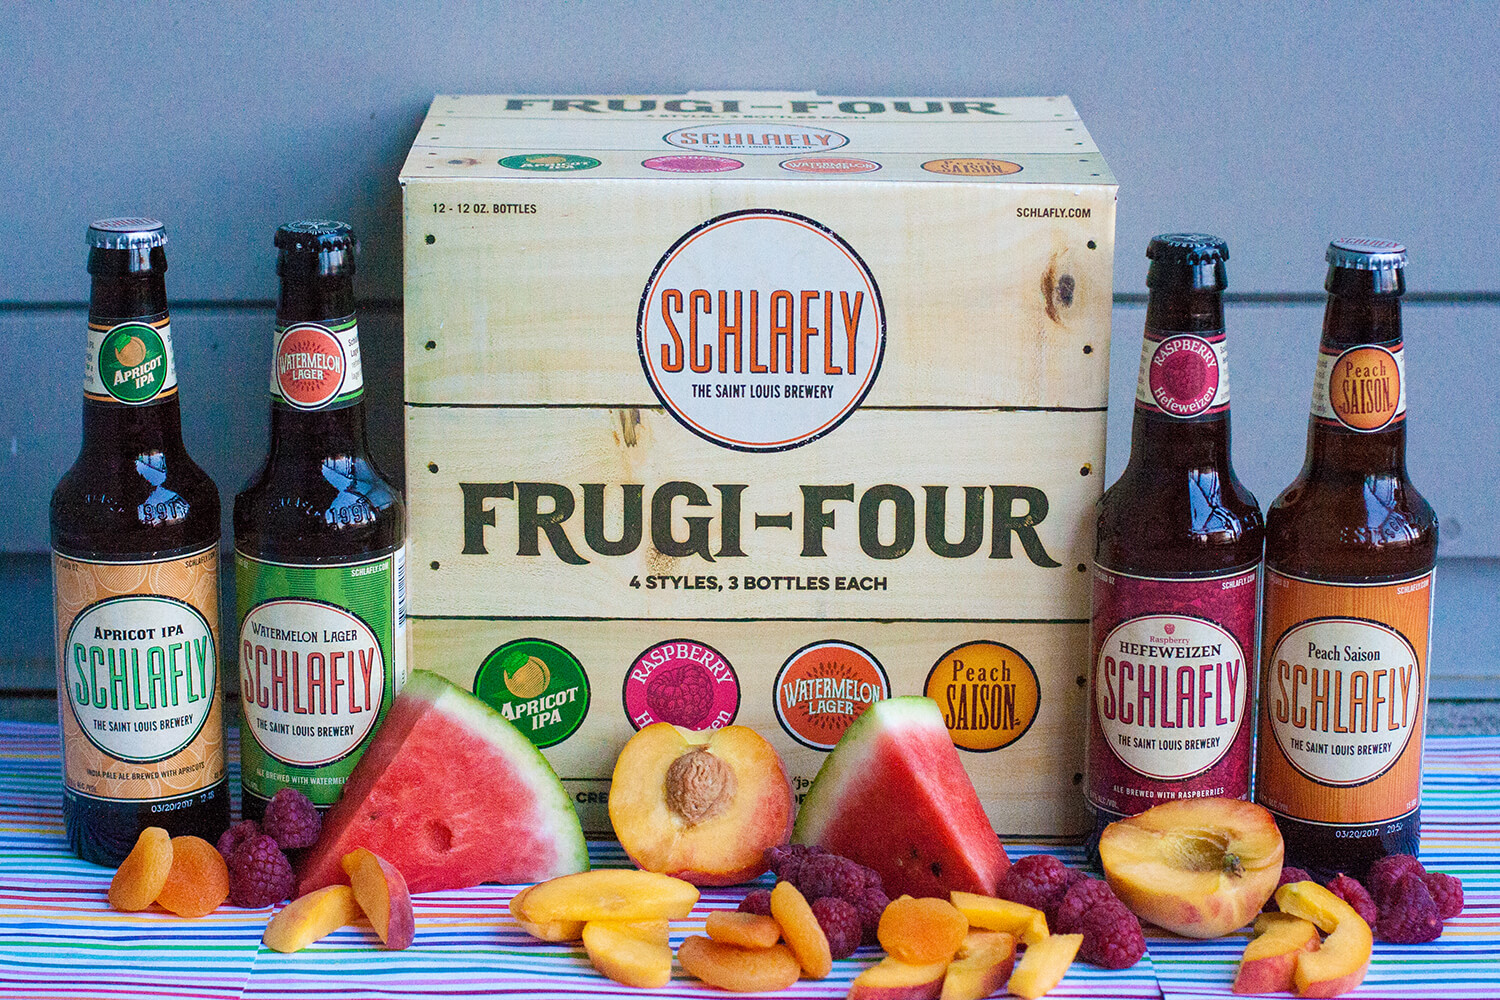 Schlafly Frugi-Four Sampler Pack